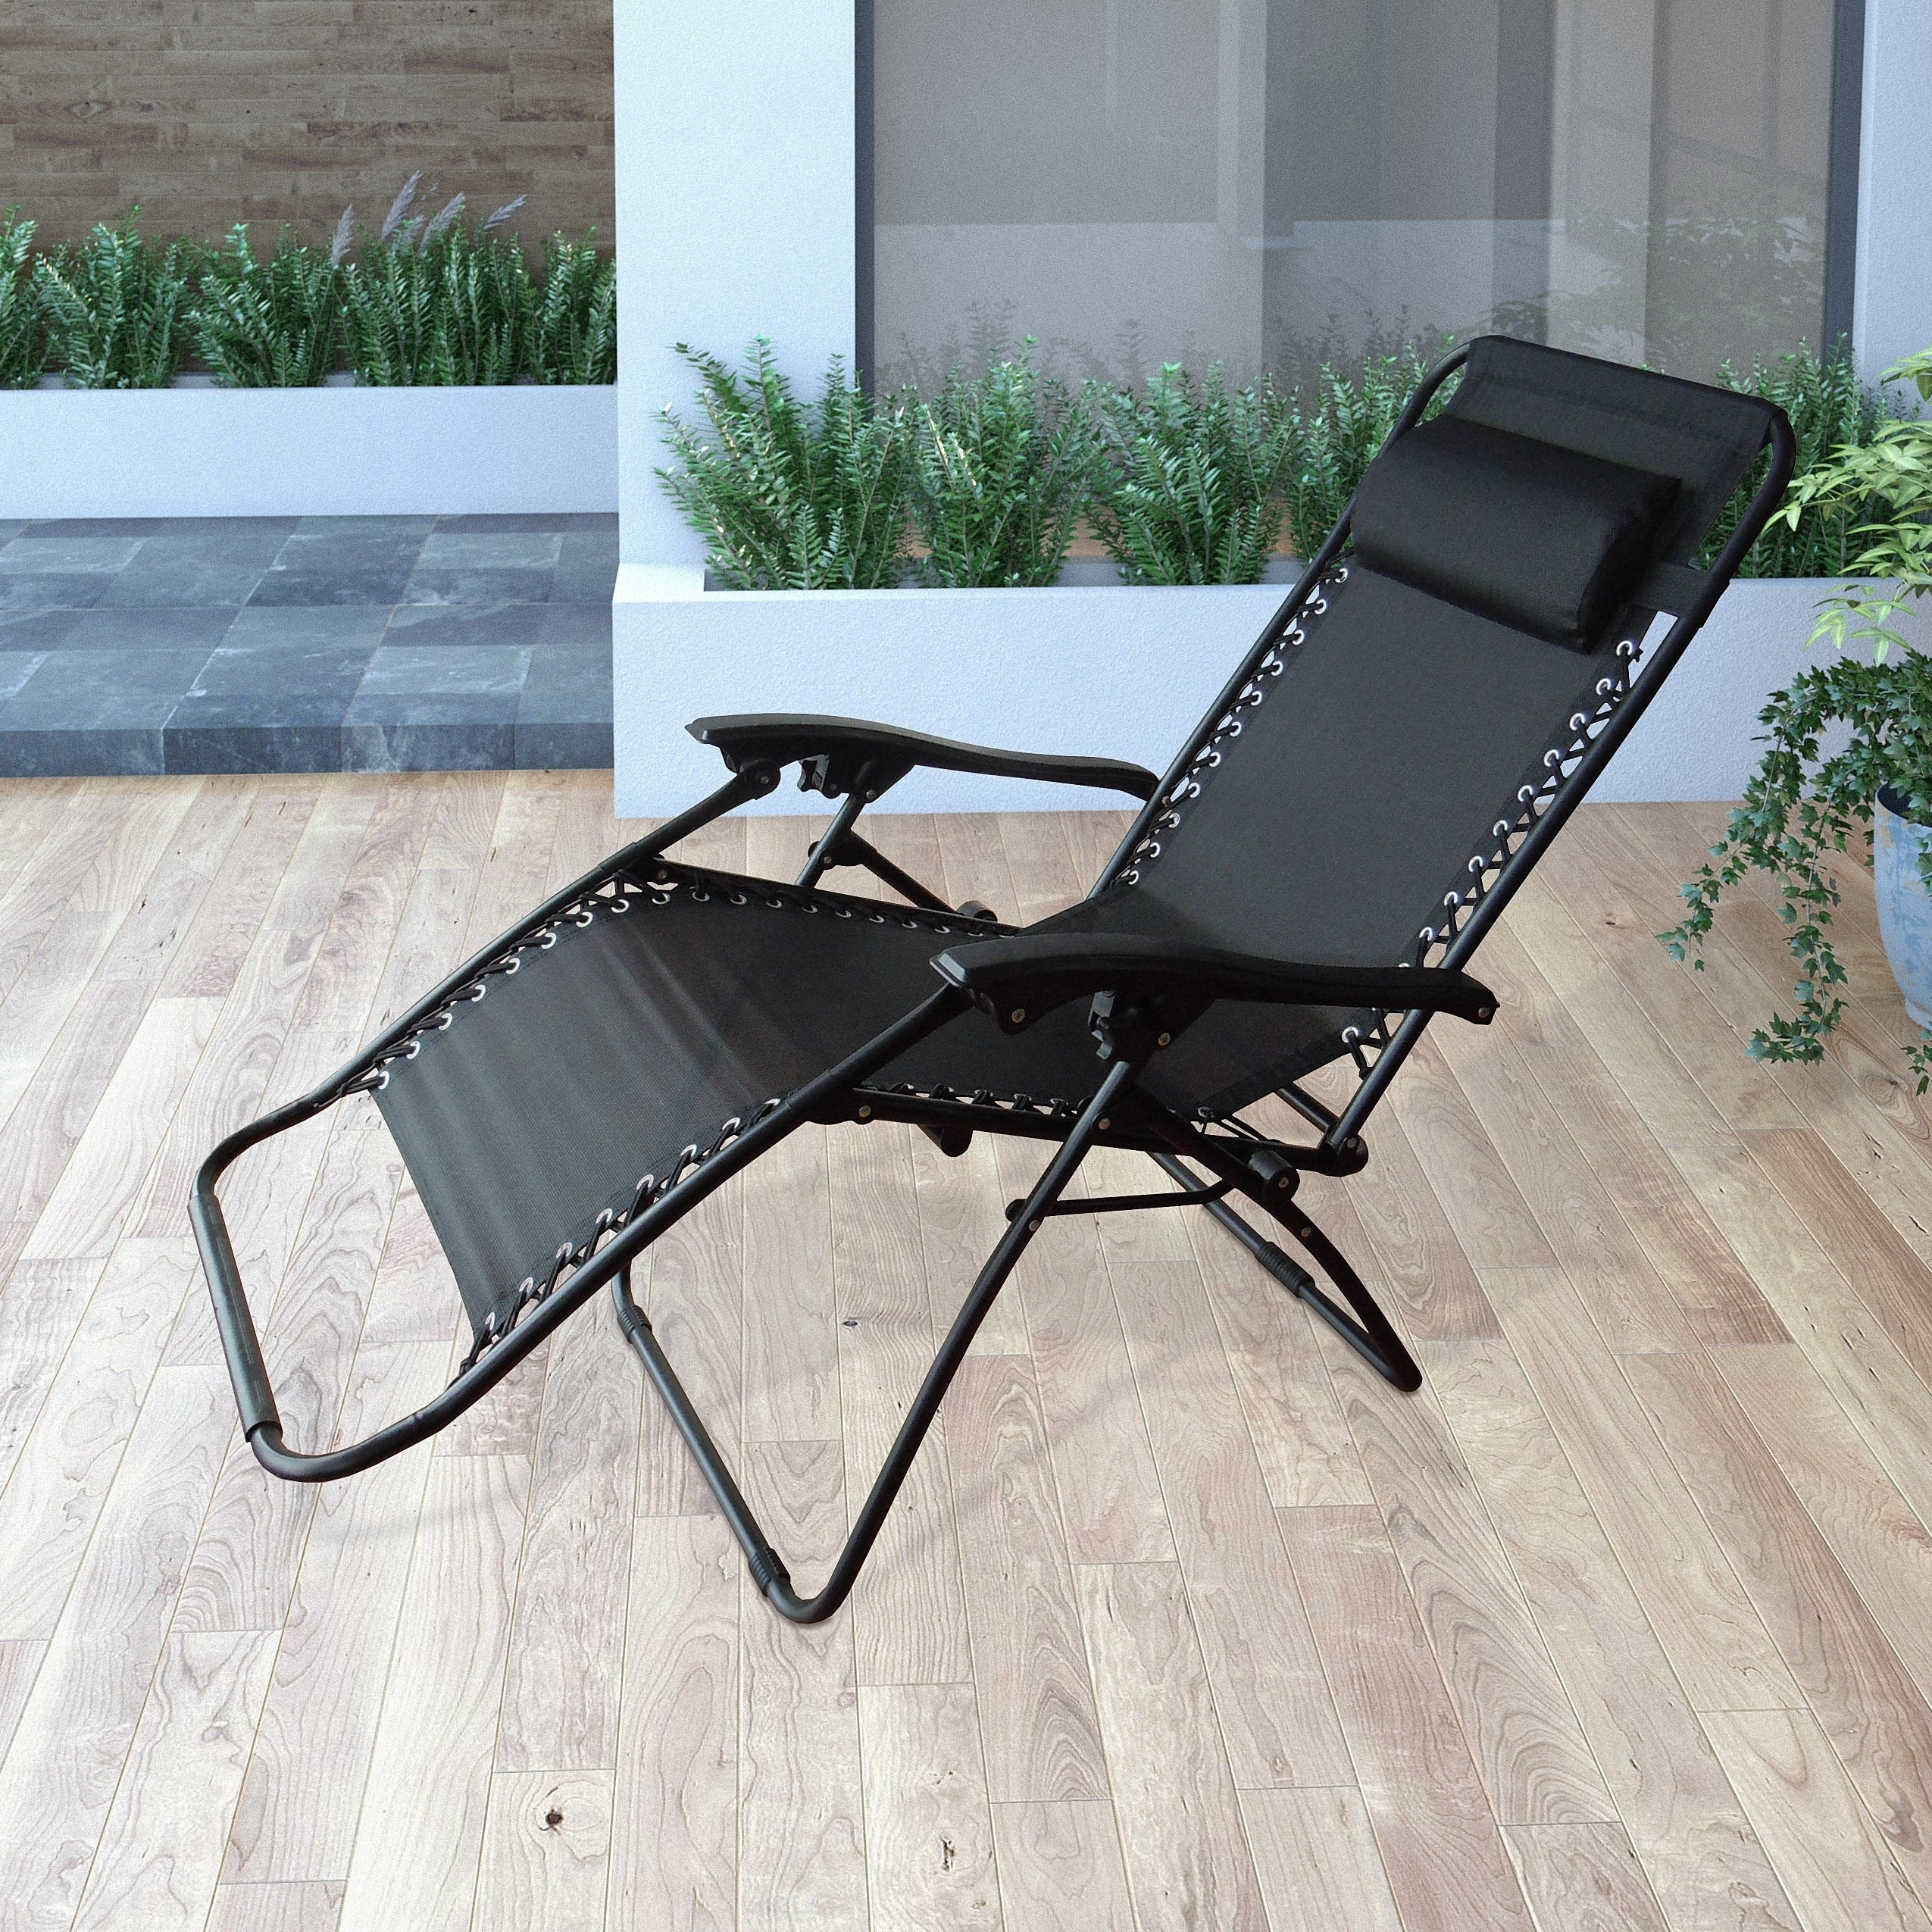 Popular Corliving Riverside Textured Loungers Pertaining To Corliving Riverside Textured Zero Gravity Lounger (Gallery 9 of 25)